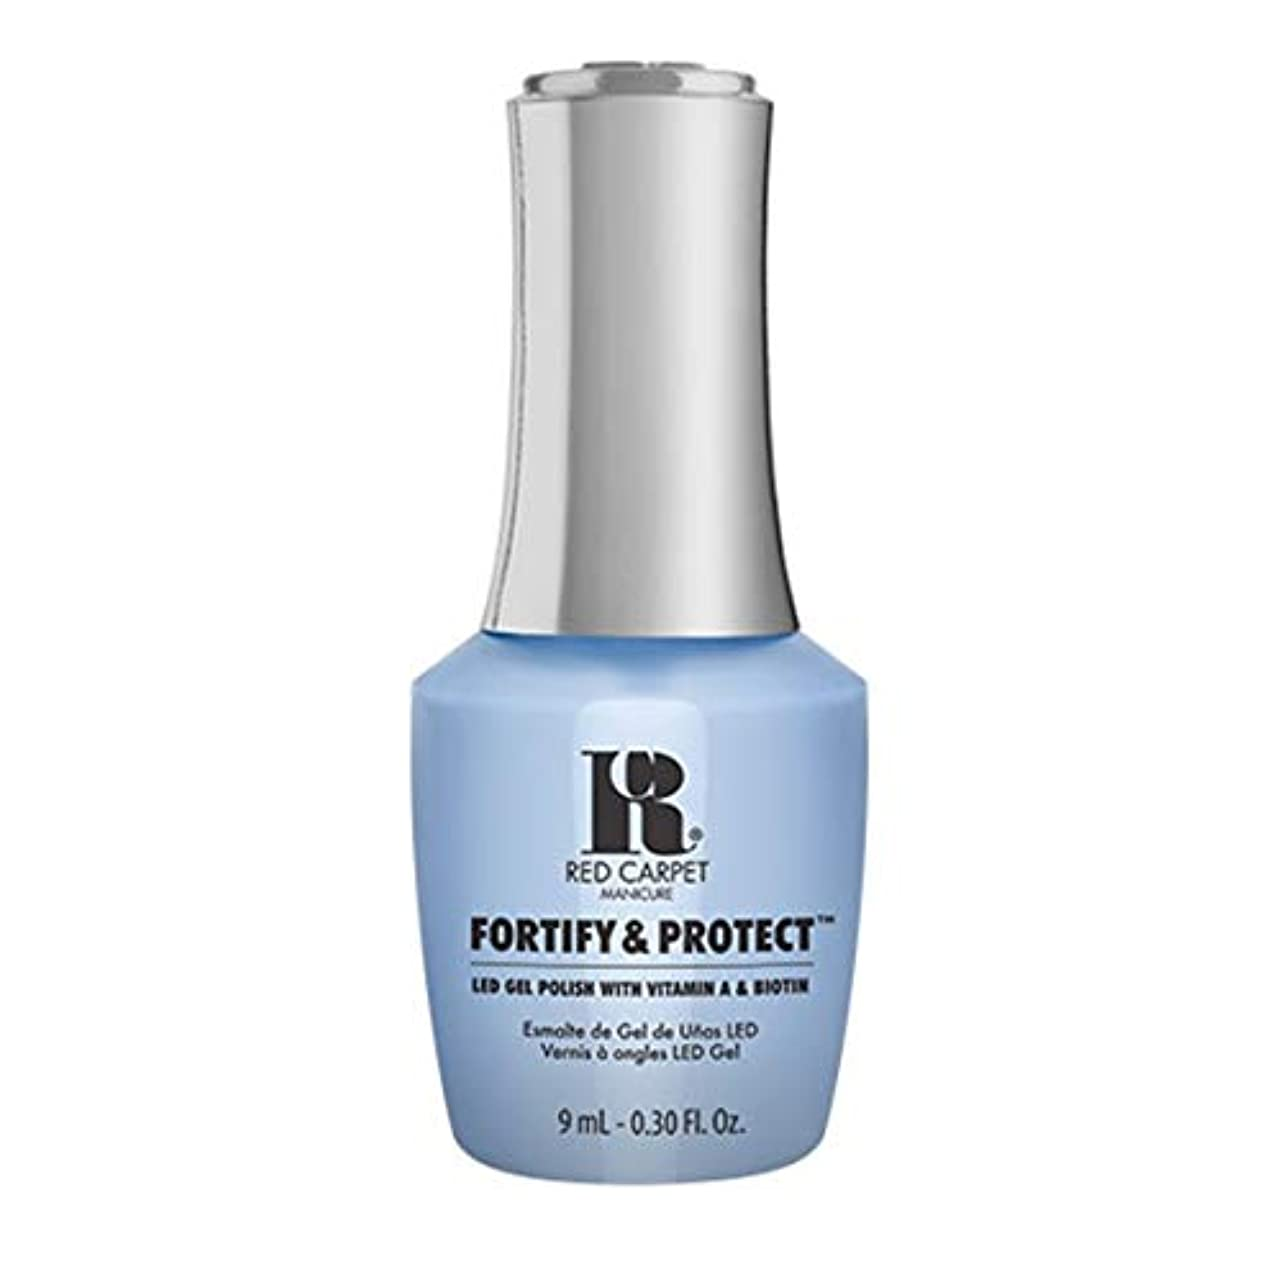 リスキーな運搬ジョリーRed Carpet Manicure - Fortify & Protect - Runway Rehearsal - 9ml / 0.30oz